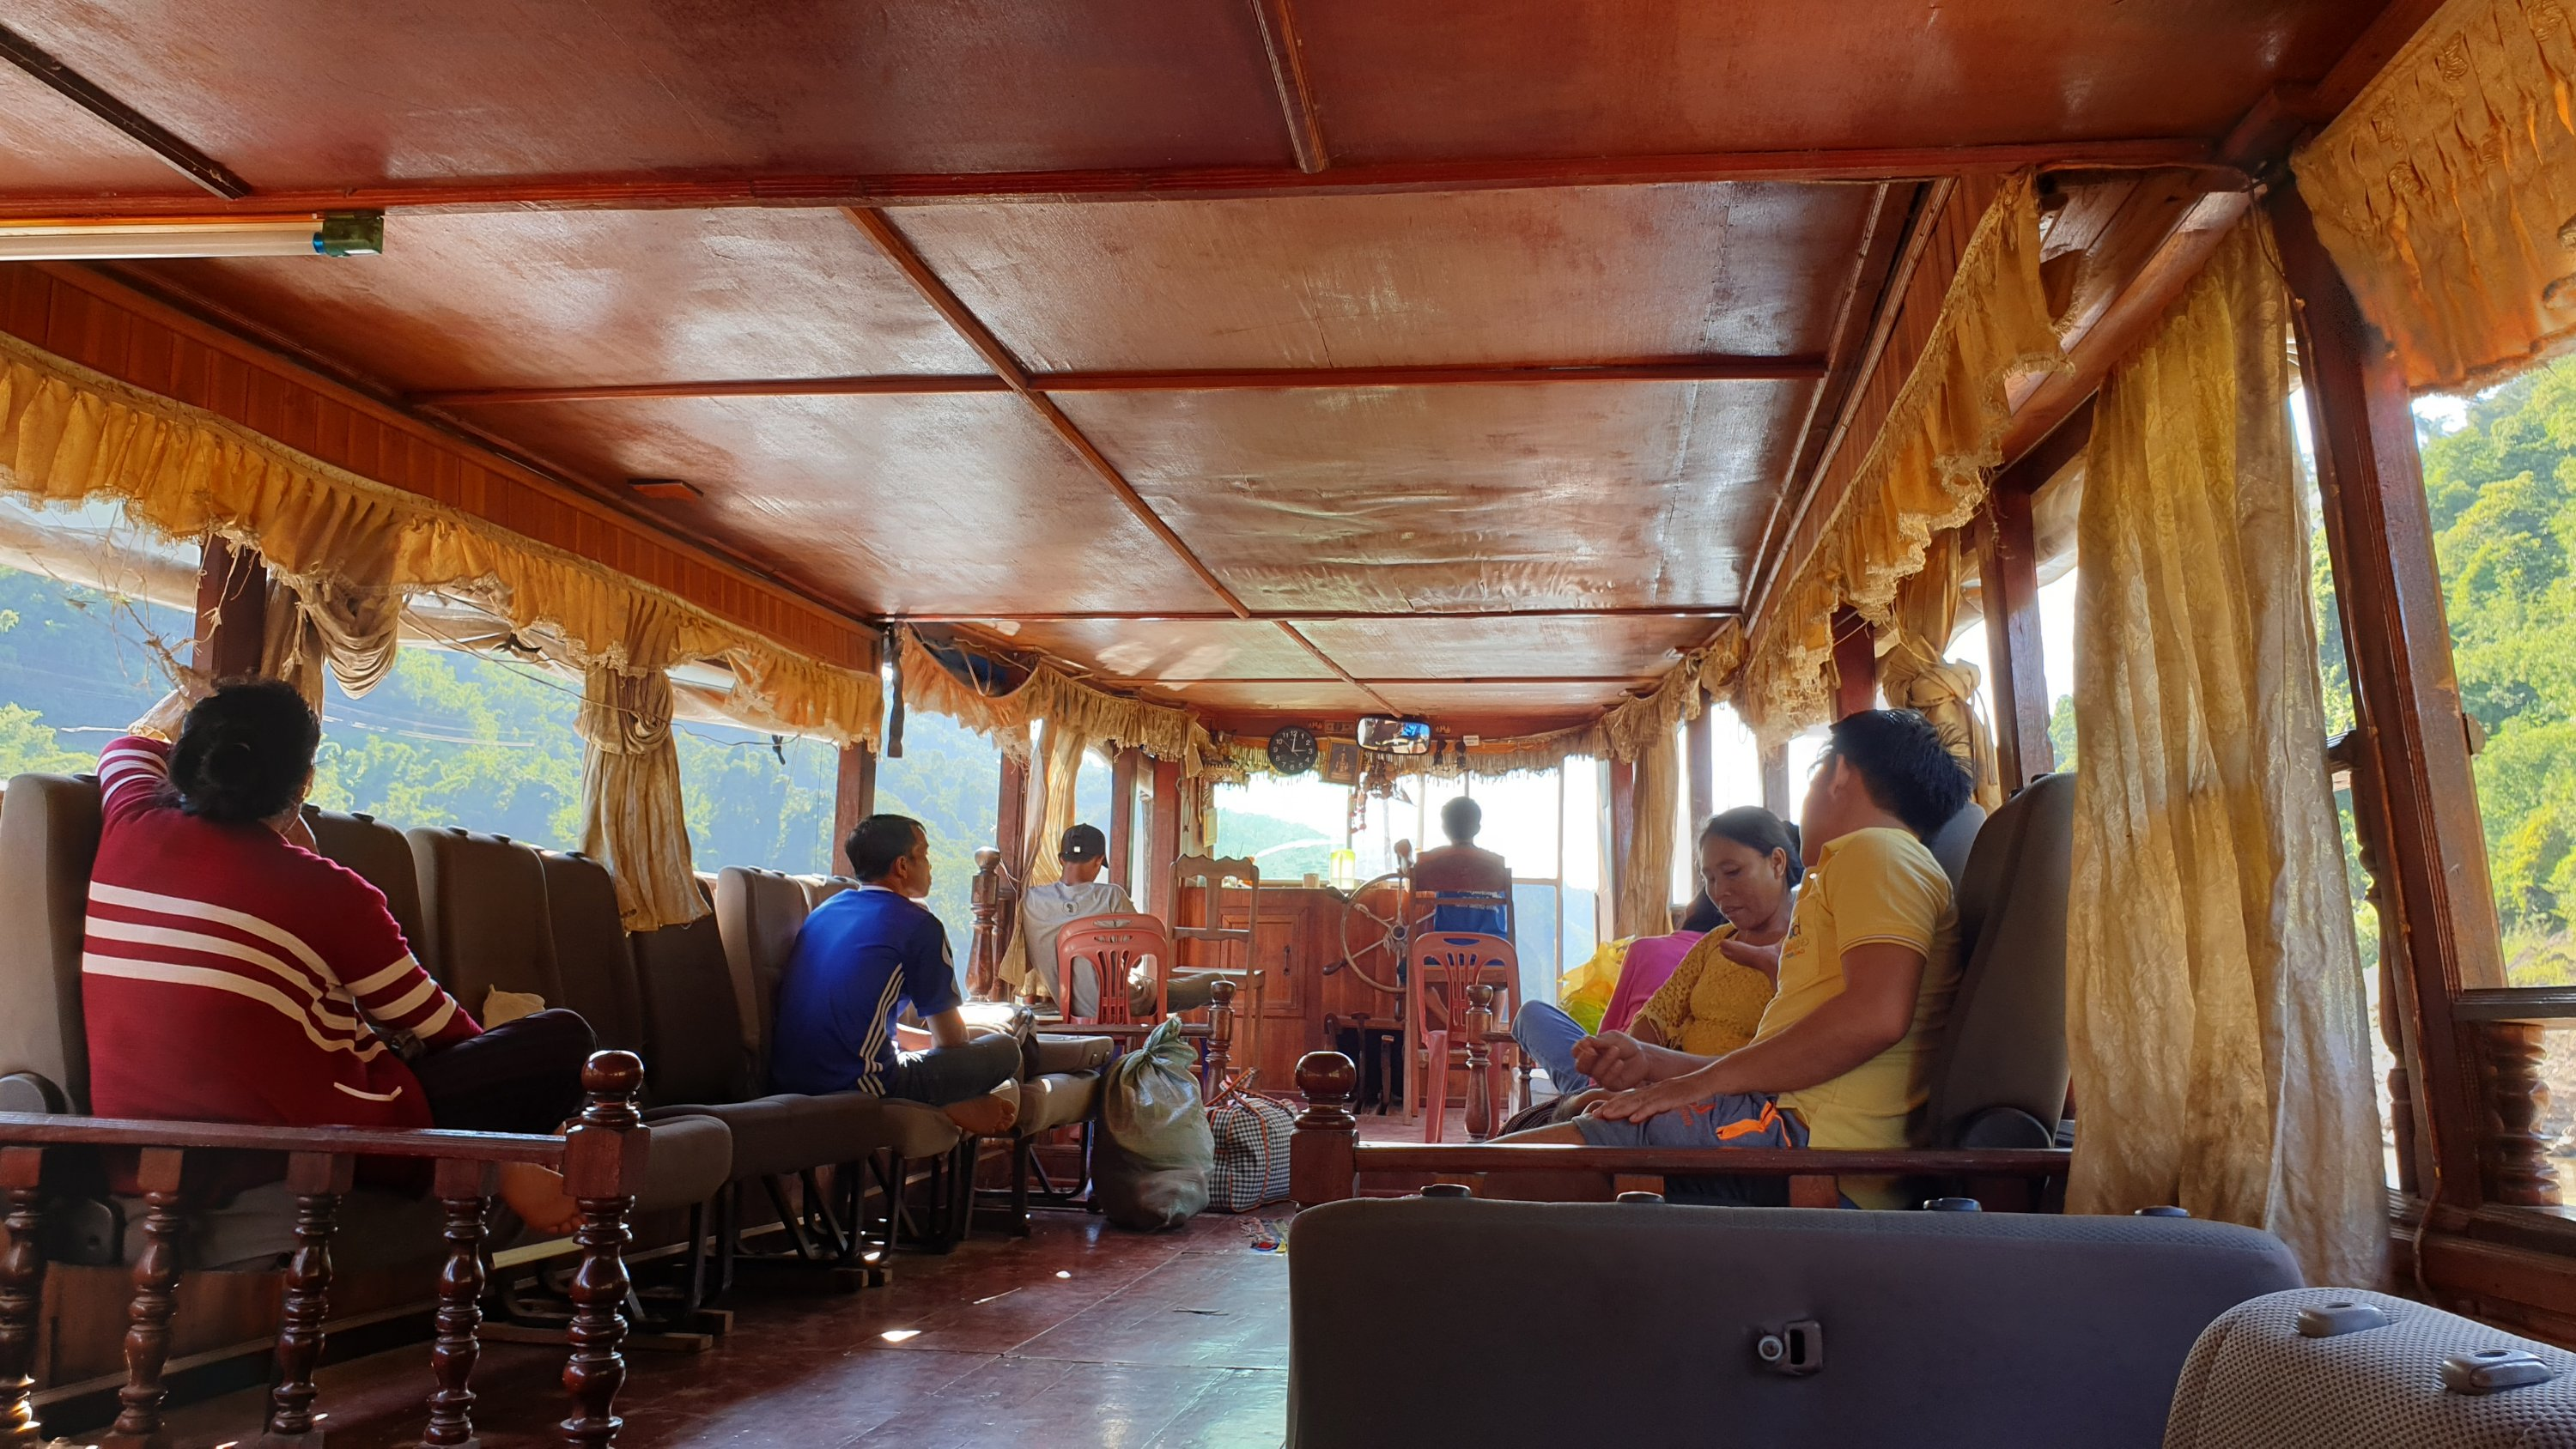 On board a slow boat in Laos